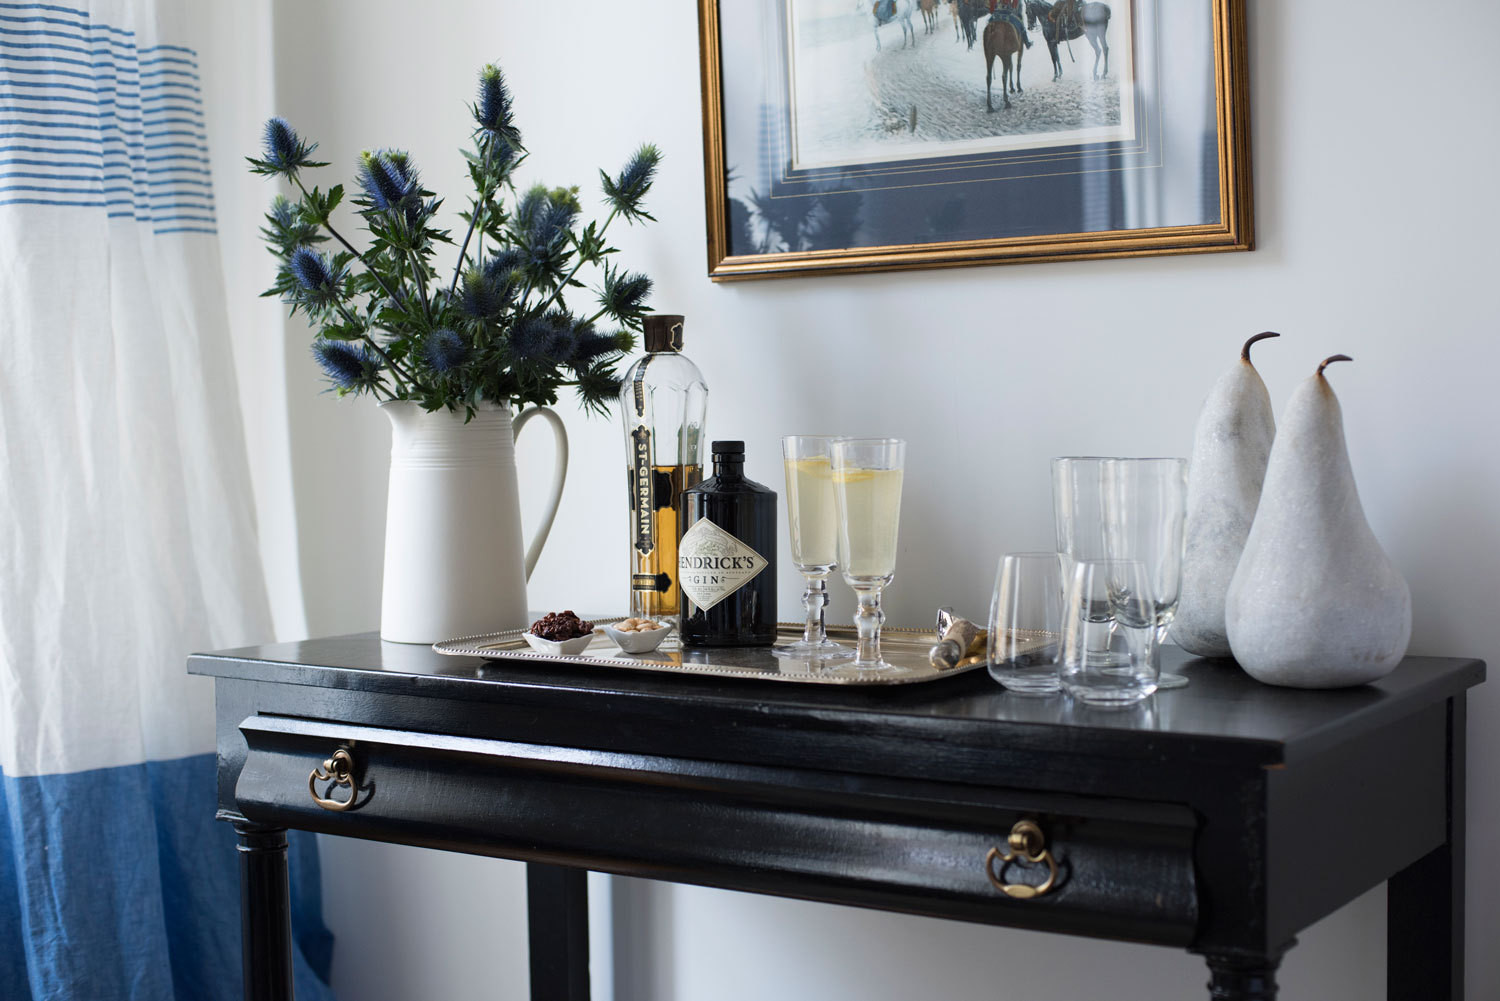 In the Brooklyn apartment Sarah Storms shares with her fiancé, a sideboard doubles as a bar, topped with entertaining essentials from her dream Zola registry. Storms's hair by TéQuan Johnson; makeup by Elyssa Marie Rivera.